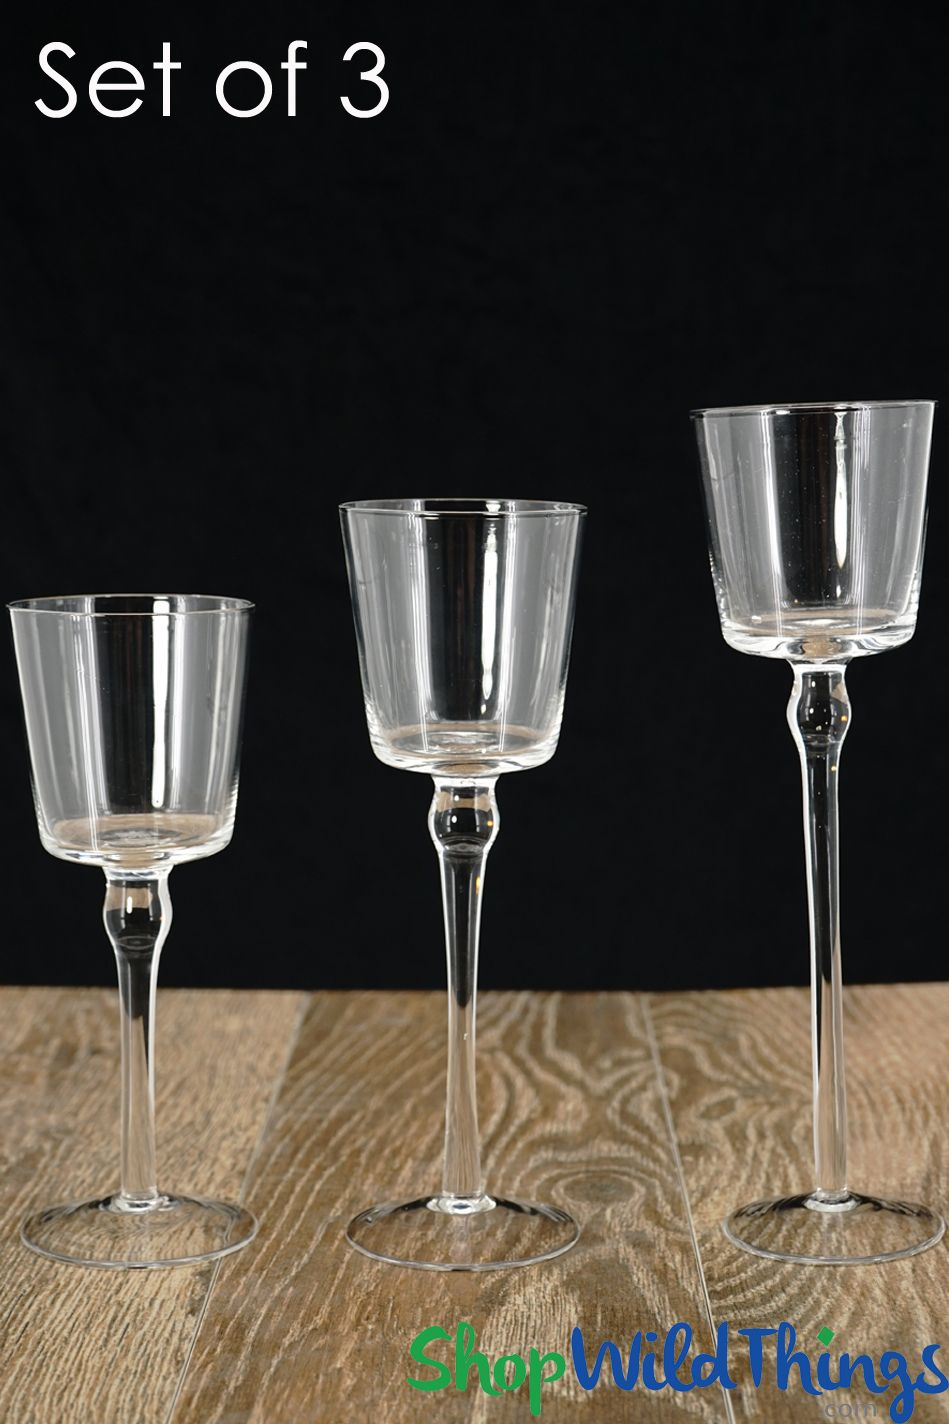 Classy looking centerpieces start with sophisticated decor pieces like this long stem glass candle holder set of 3 the cylinder shaped cups sitting atop